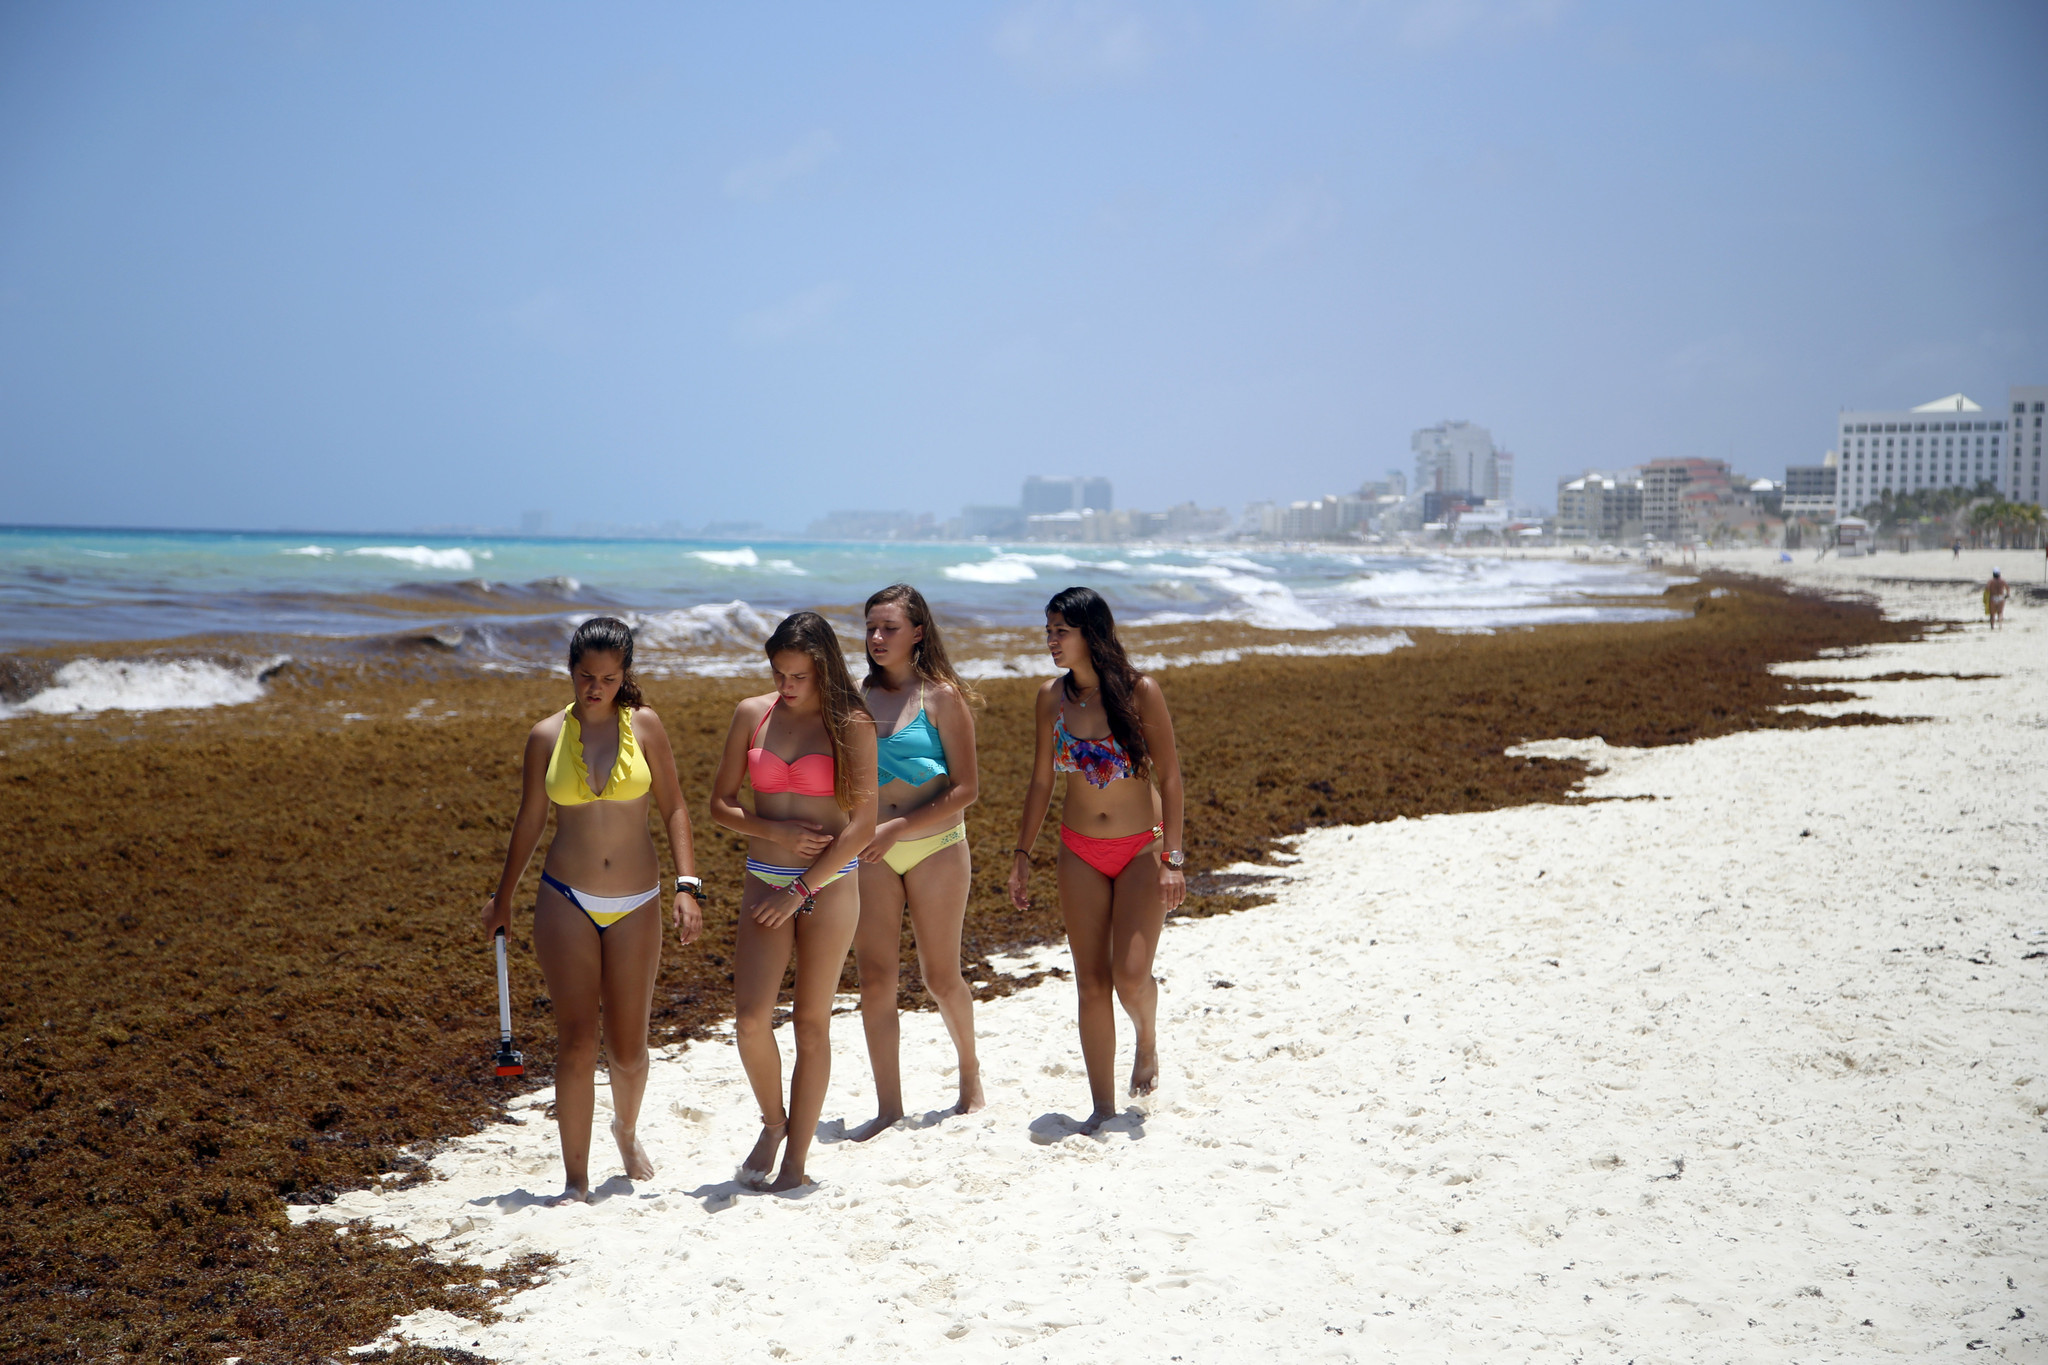 Stinking mats of seaweed piling up on Caribbean beaches ...